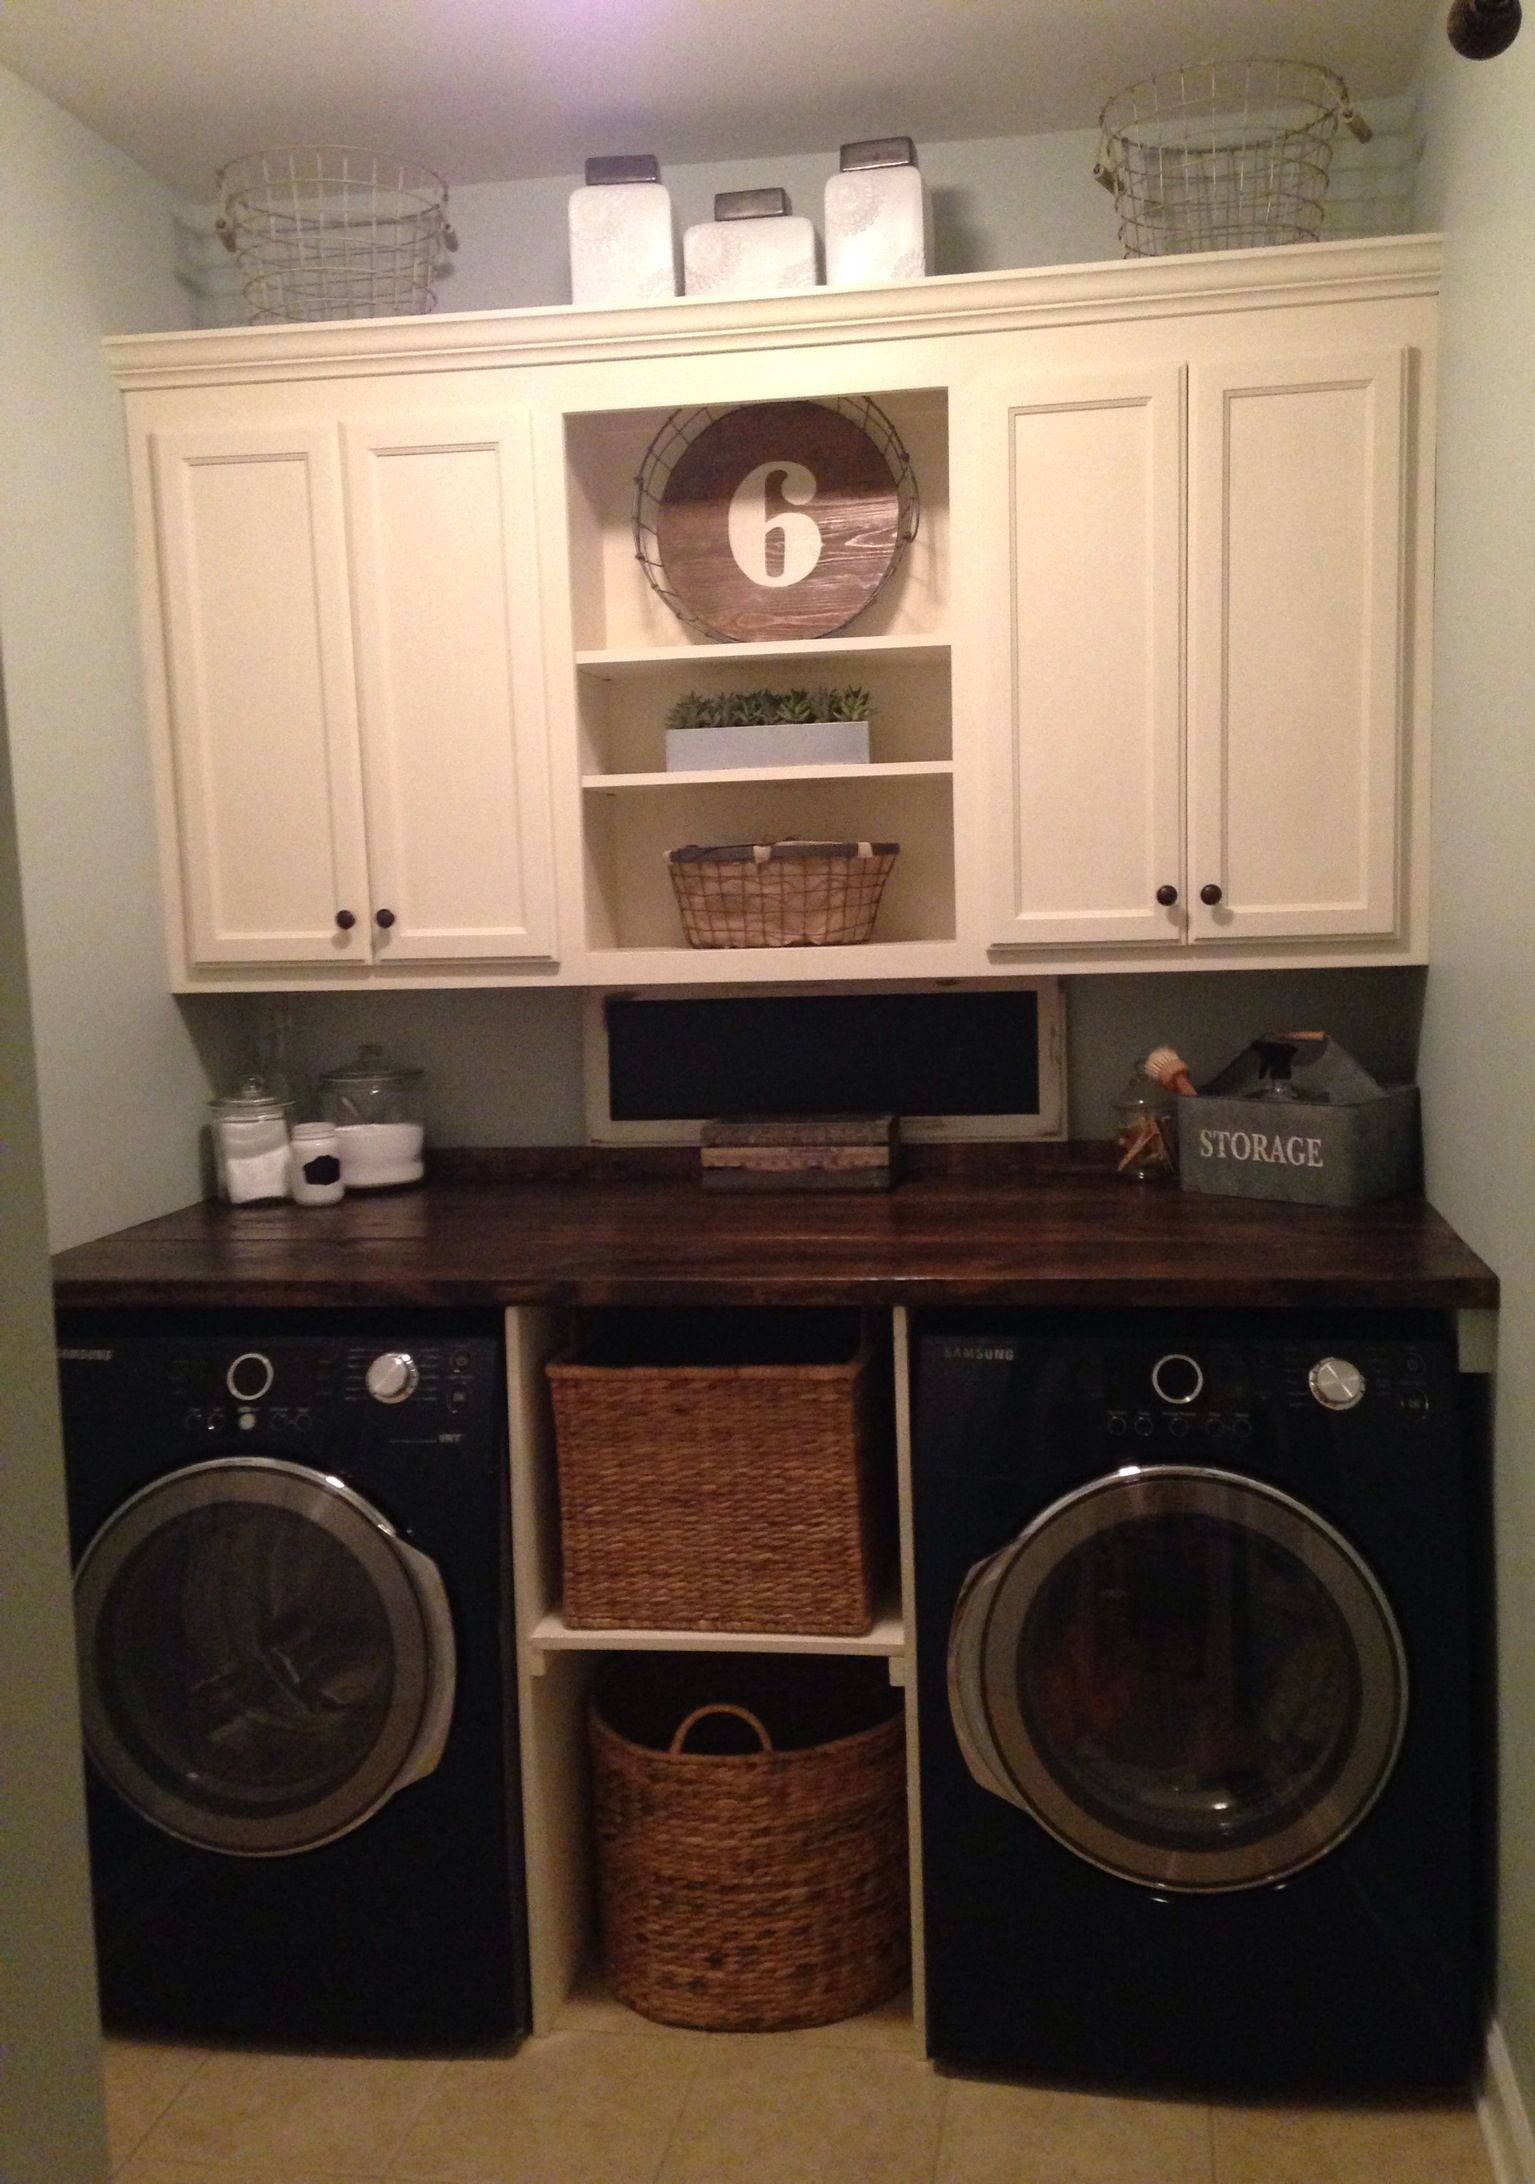 Laundry Room Makeover But Make The Bottom Middle